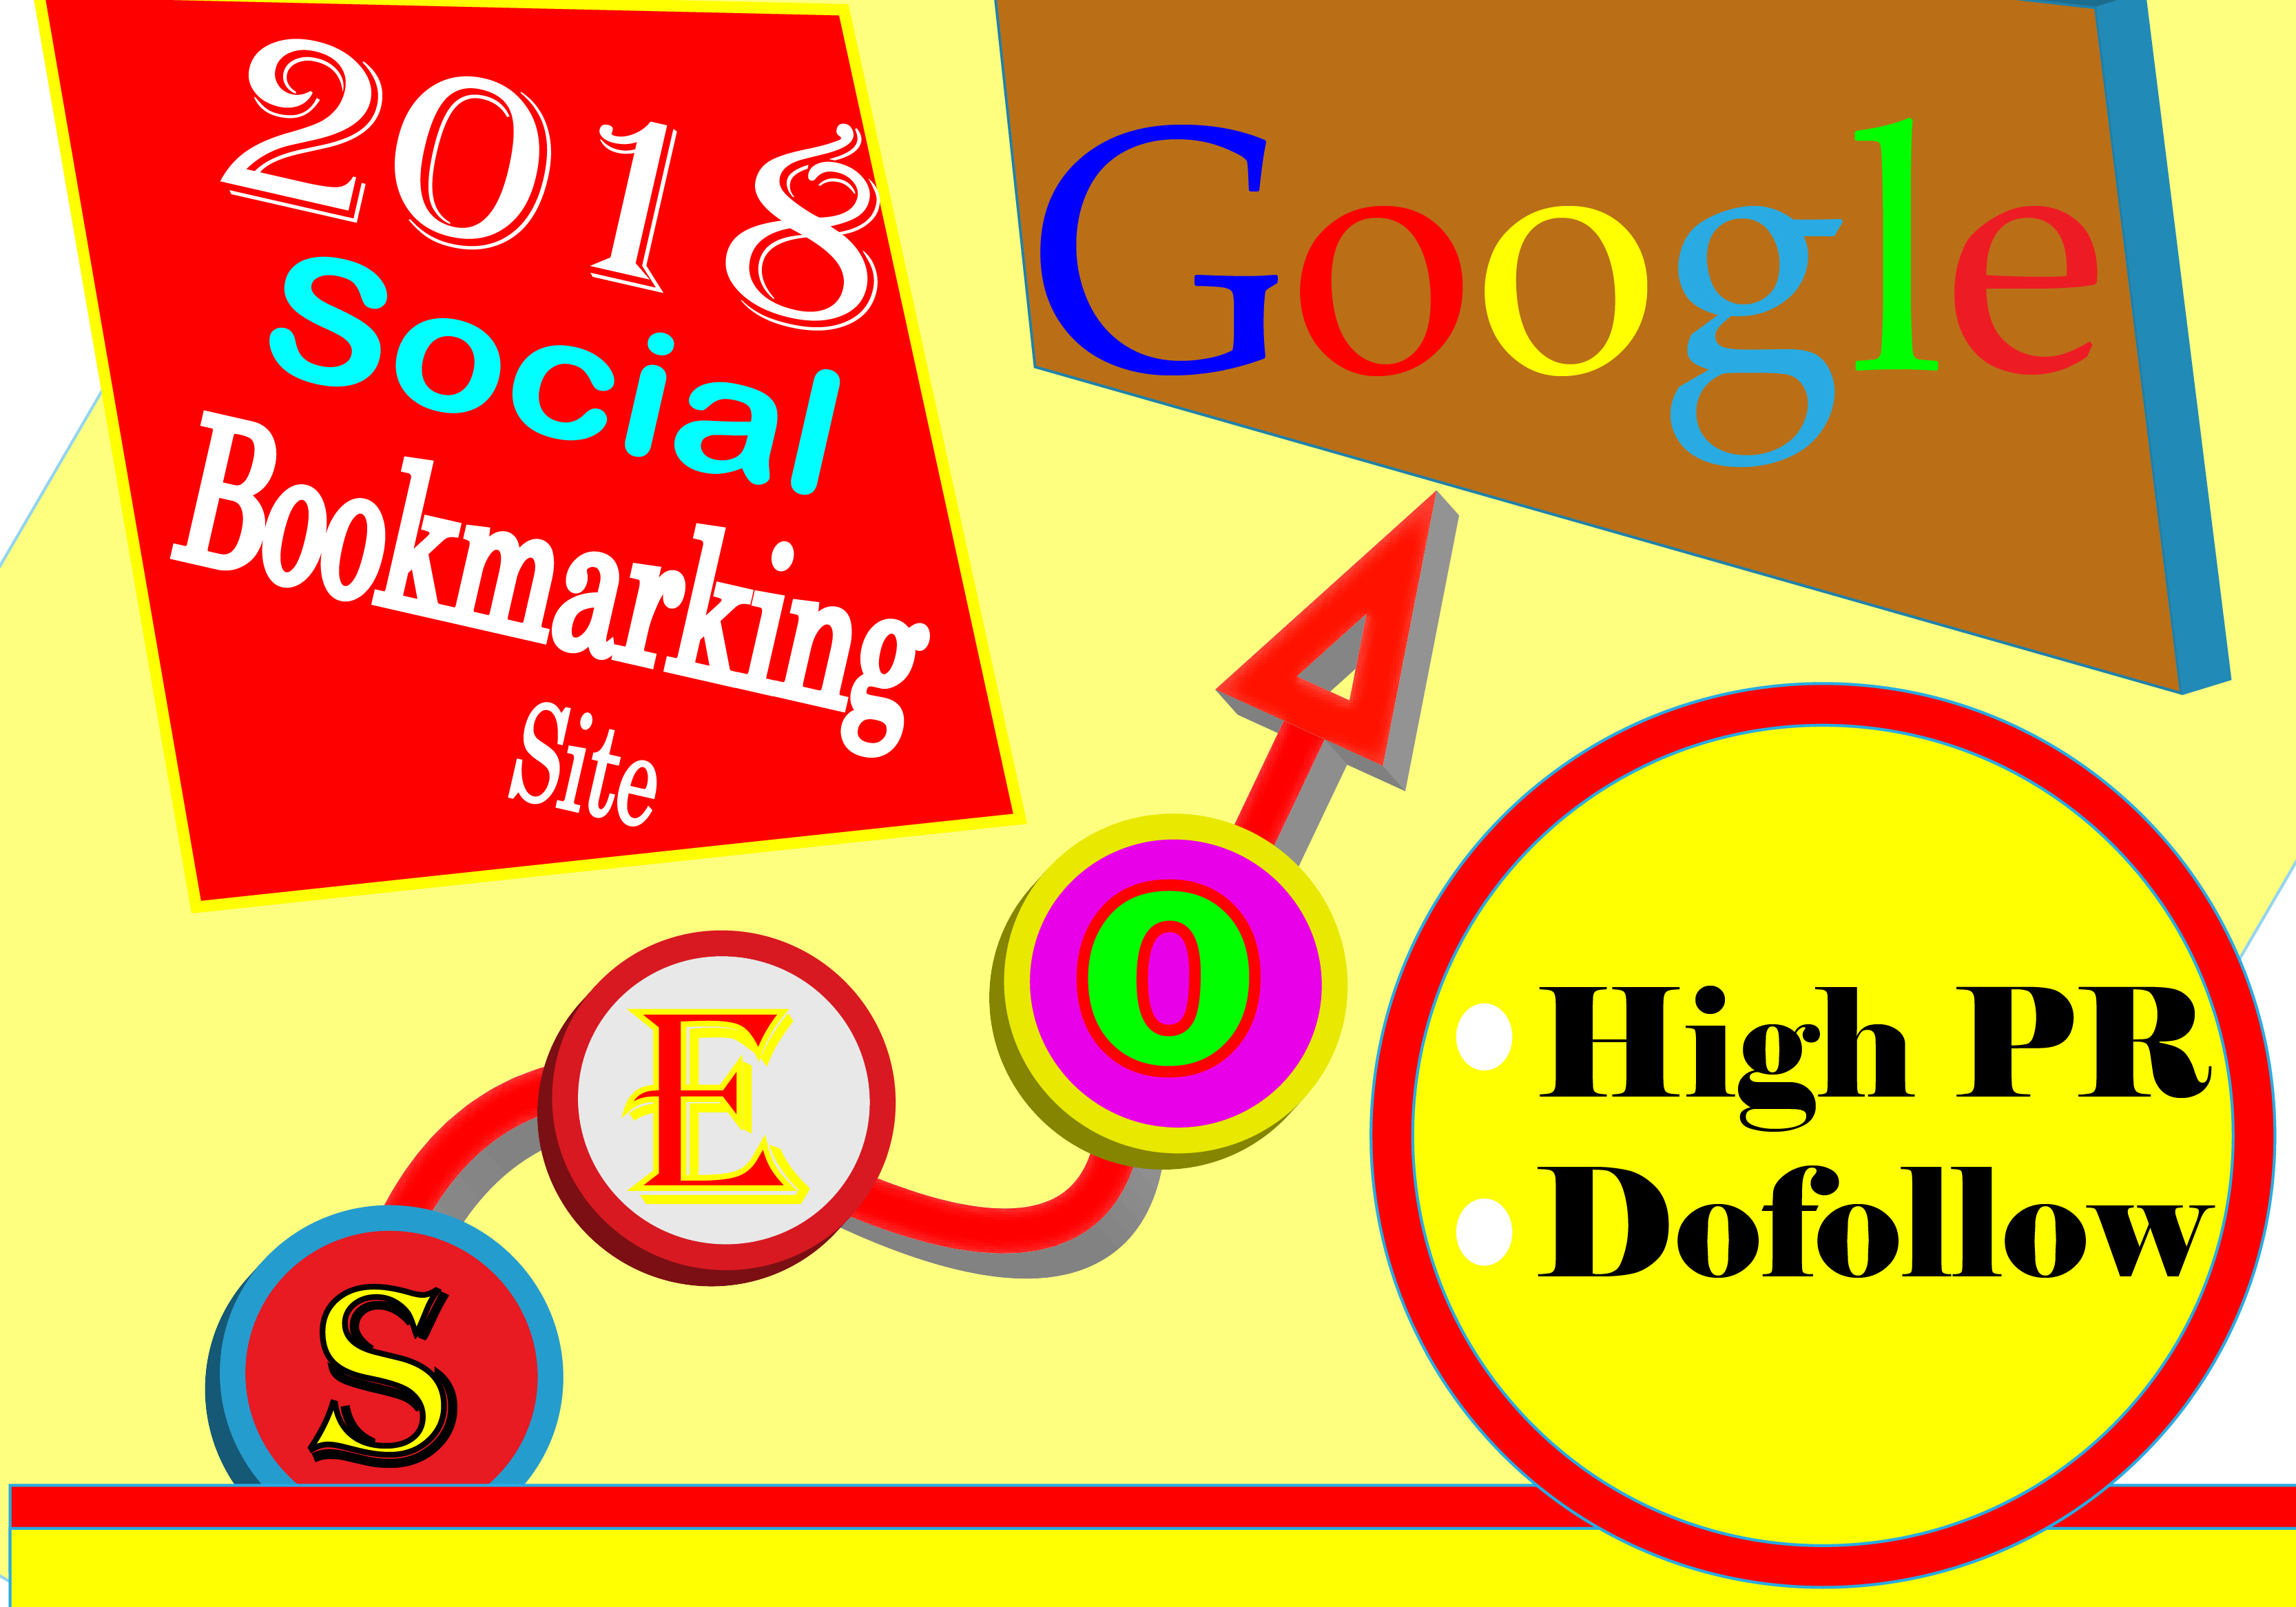 create 40 Social Bookmarking Backlinks for you